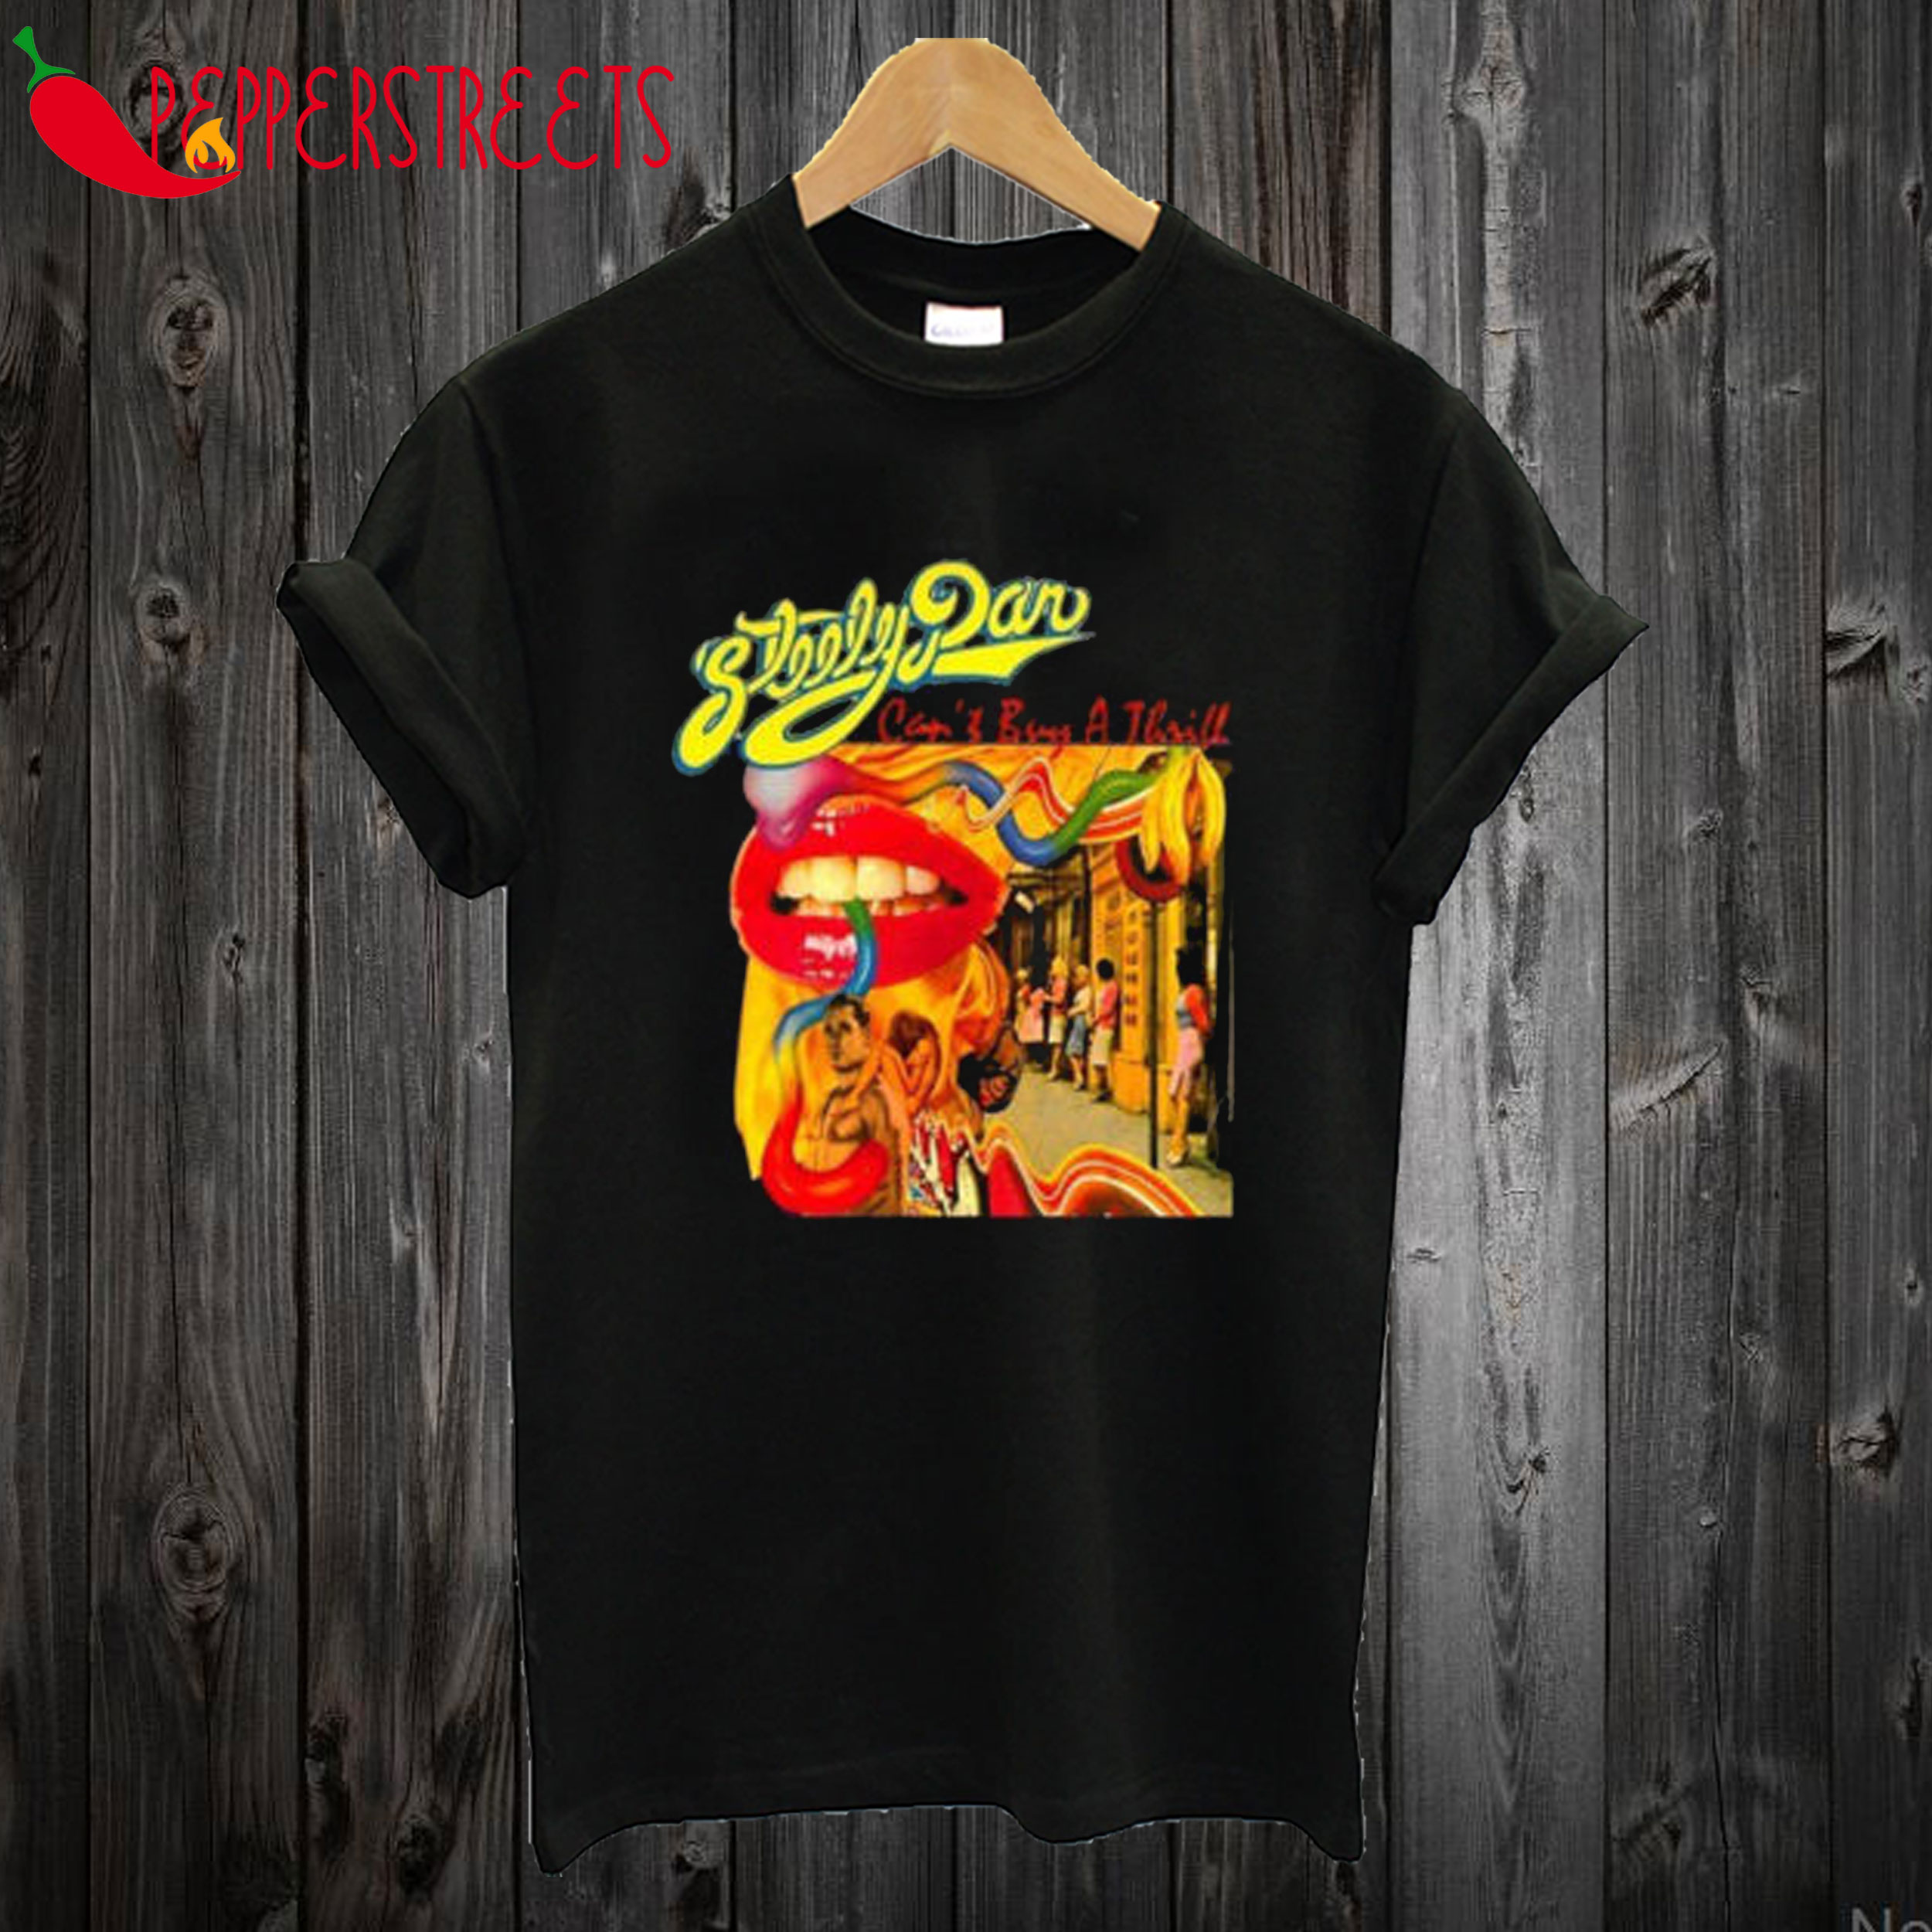 Steely Dan I Cant Buy A Thrill T-Shirt